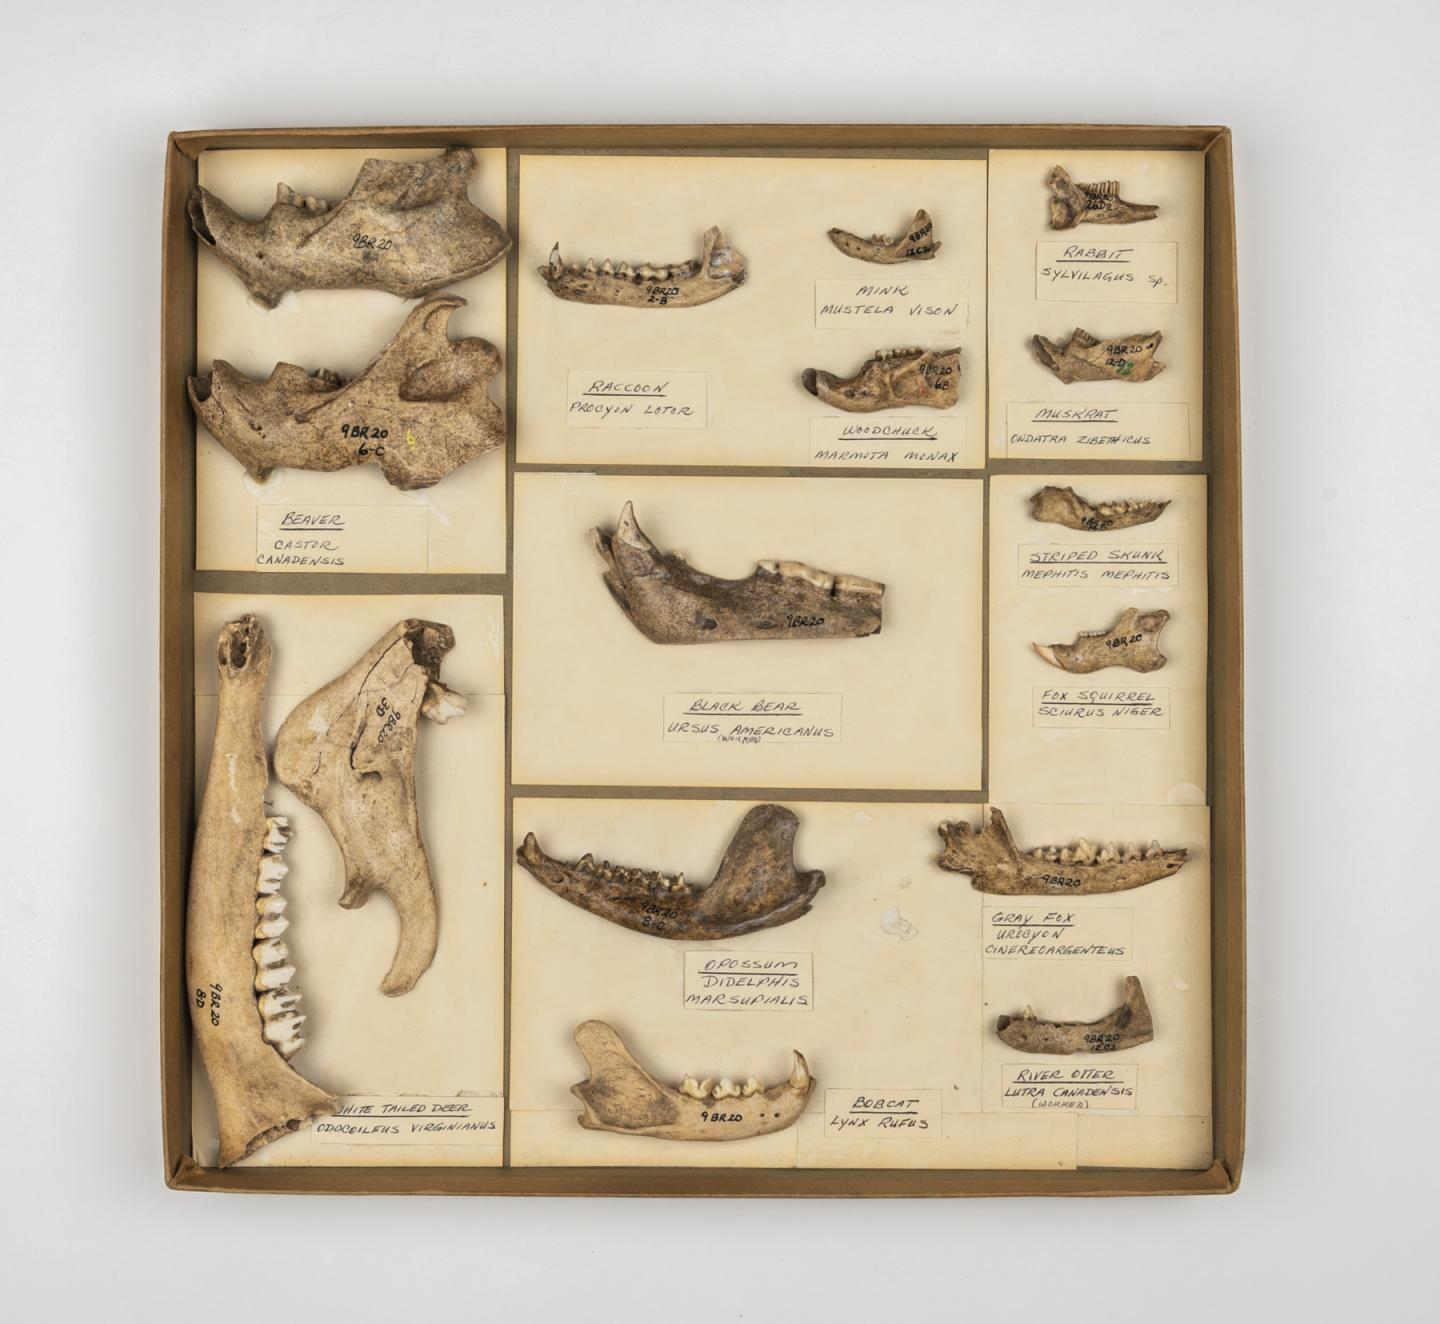 Specimens Reveal Humans' History of Using Natural Resources